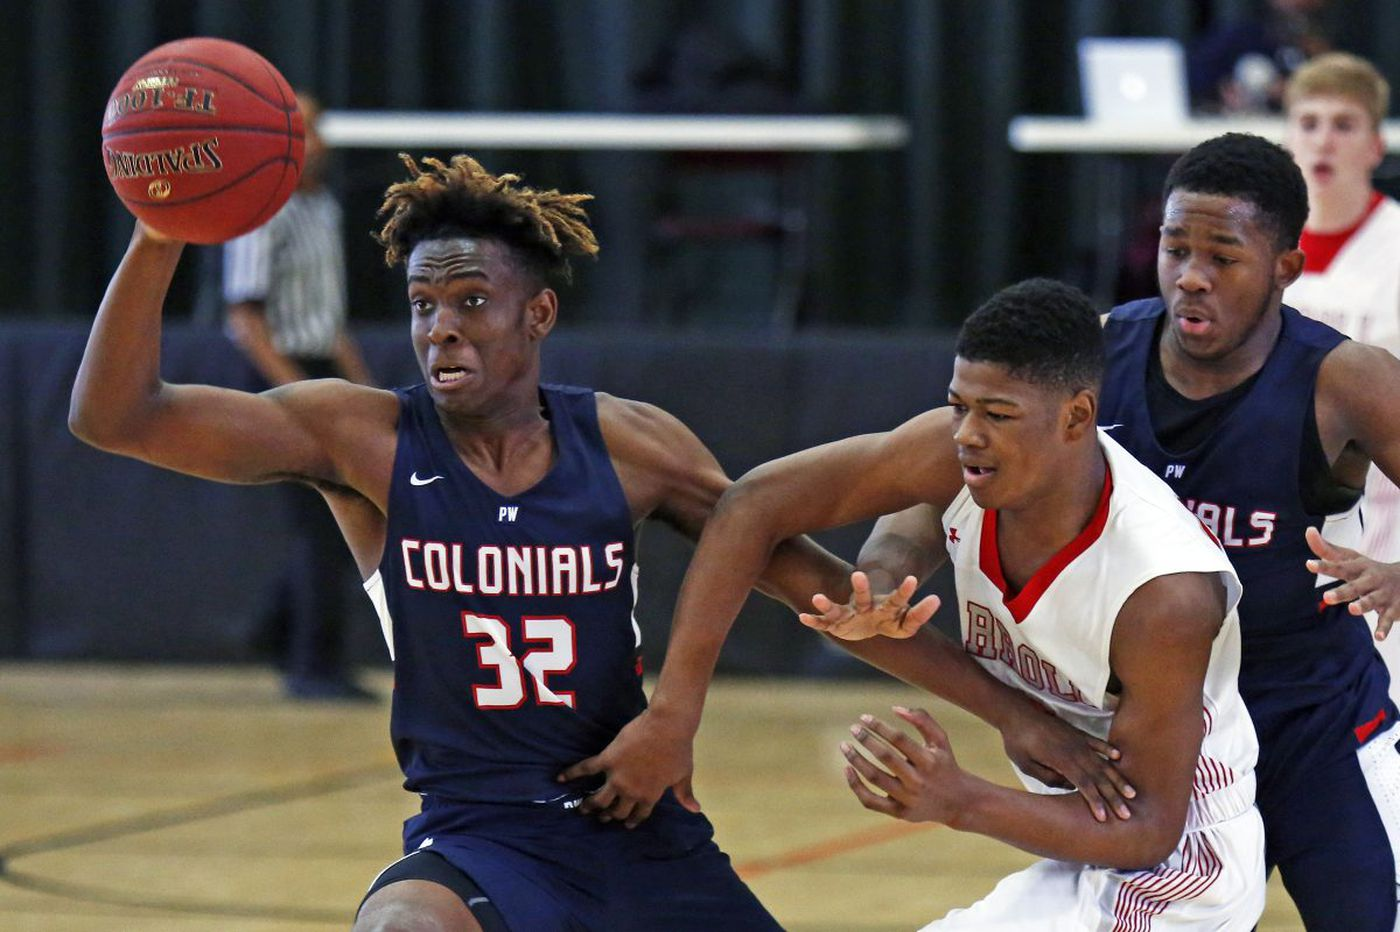 Alan Glover and Plymouth Whitemarsh surge past Archbishop Carroll